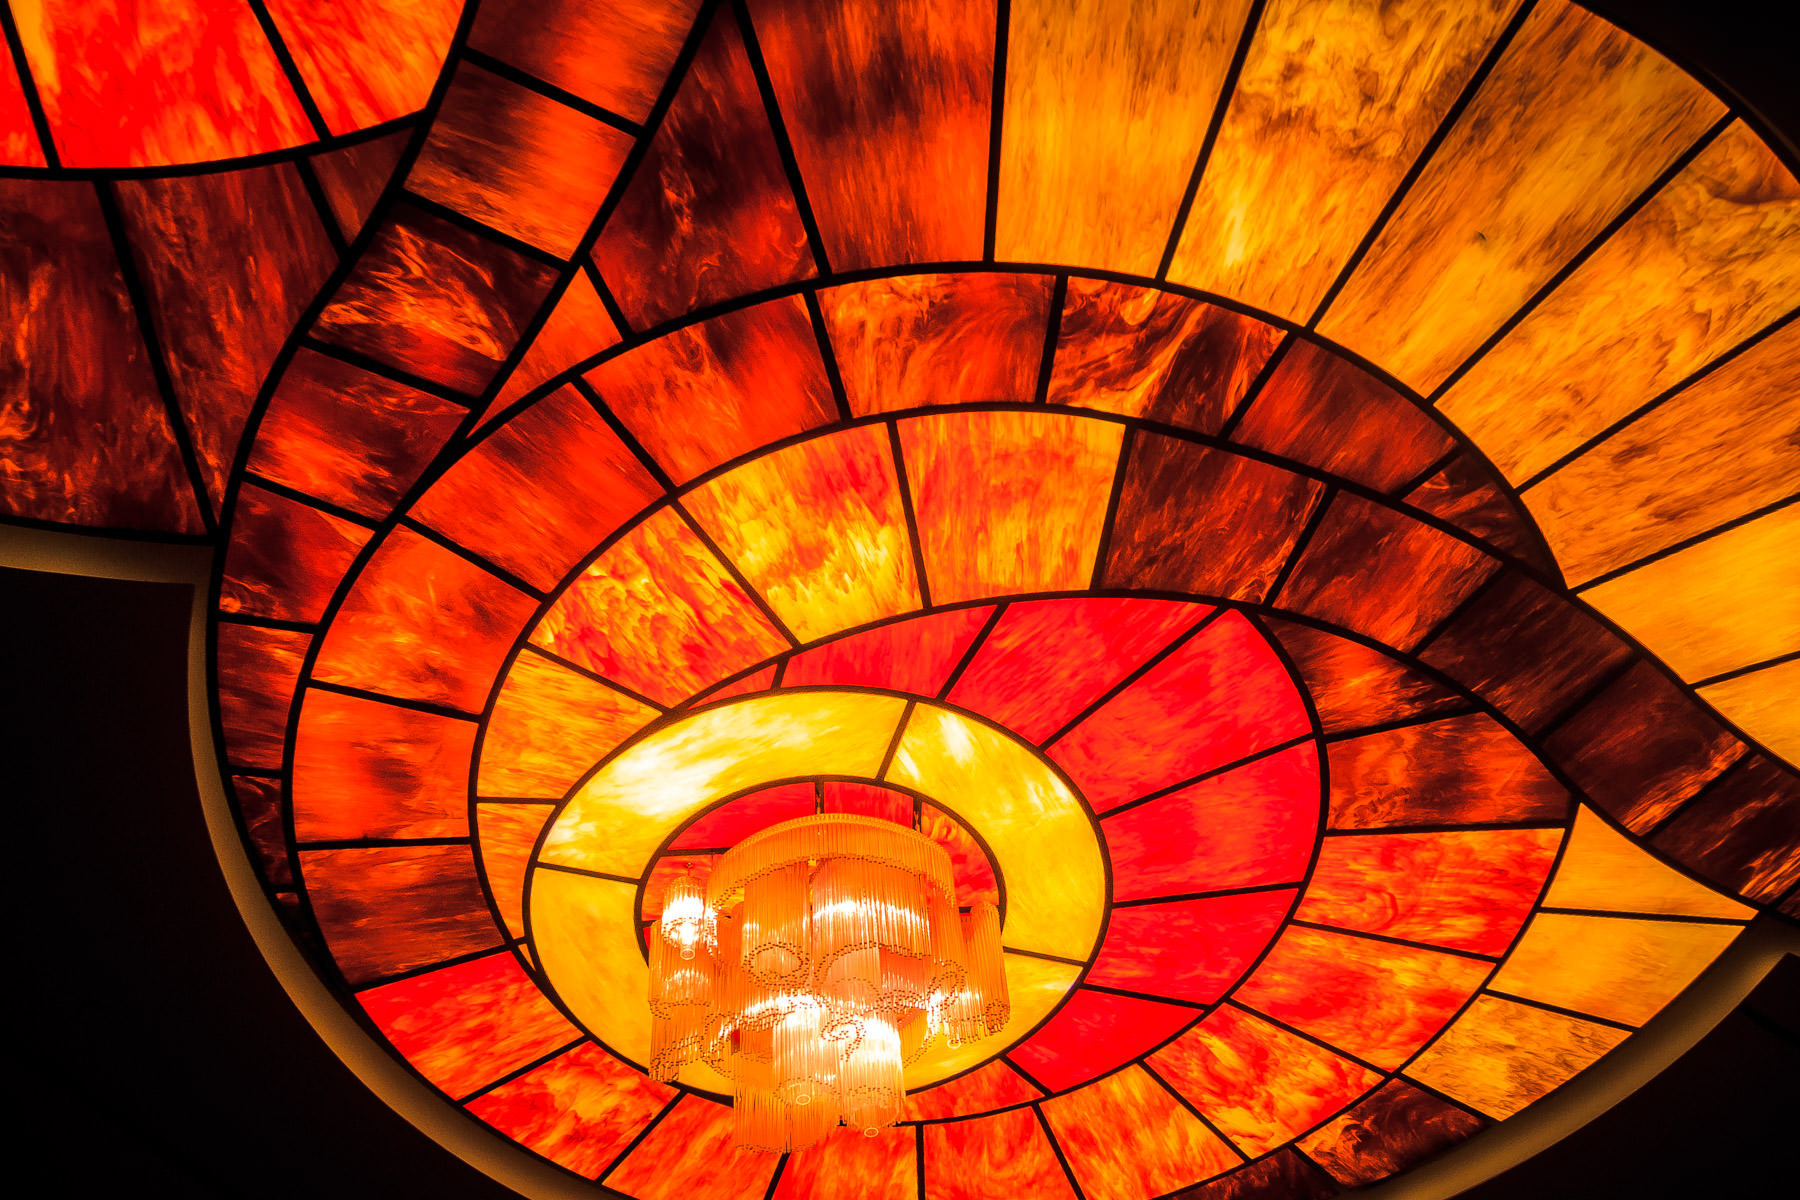 Interior detail of The Cosmopolitan of Las Vegas, featuring a chandelier and its colorful surroundings.